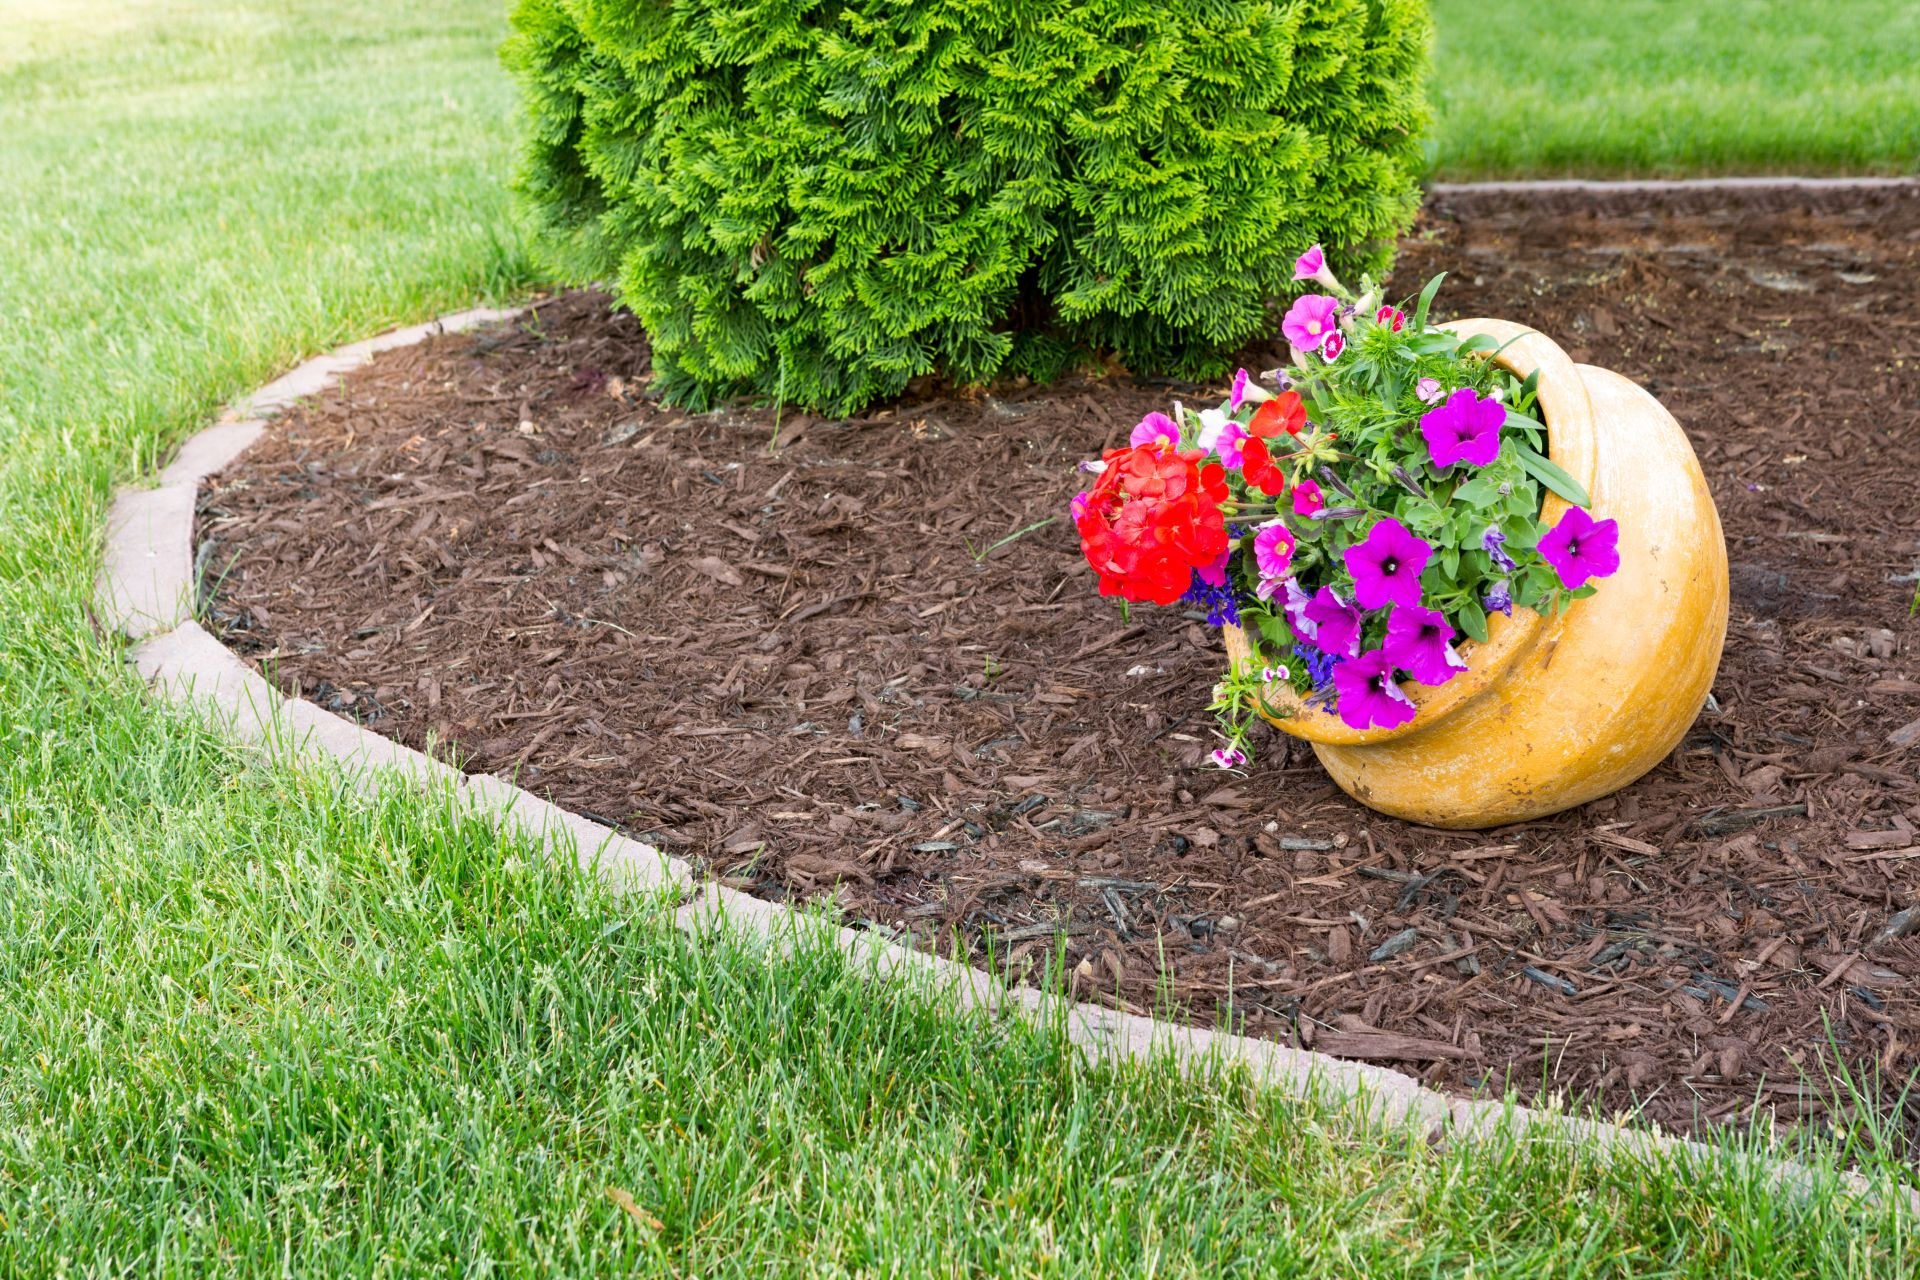 Nature Pro Lawn Care - Alabaster Helena Calera Pelham Alabama - Flower Beds Fertilizer Weed Control Lawn Pest Service